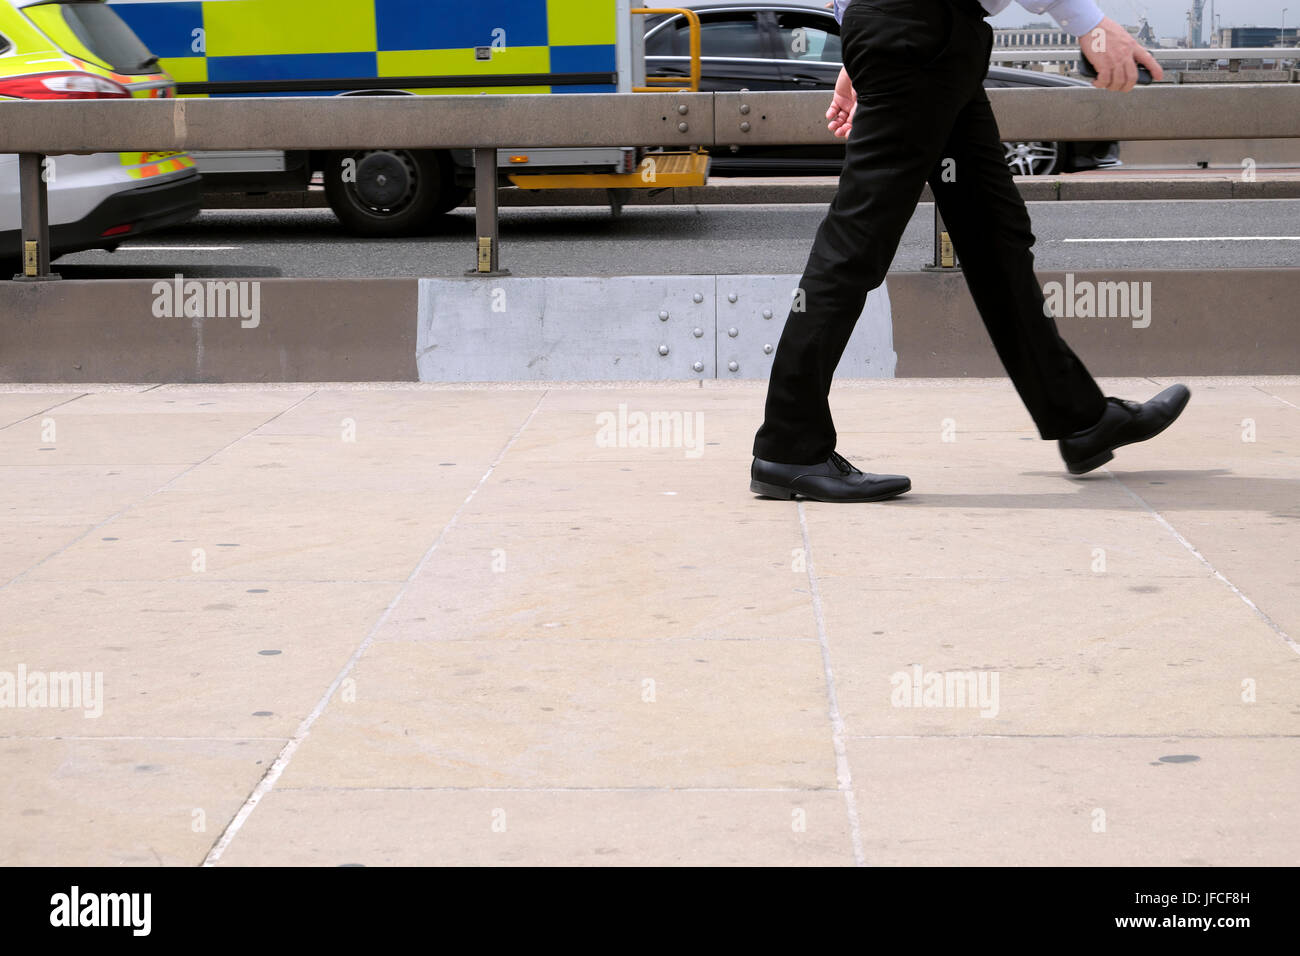 Commuter office worker walking along pavement next to anti-terrorist  concrete barriers over London Bridge and ambulance - Stock Image